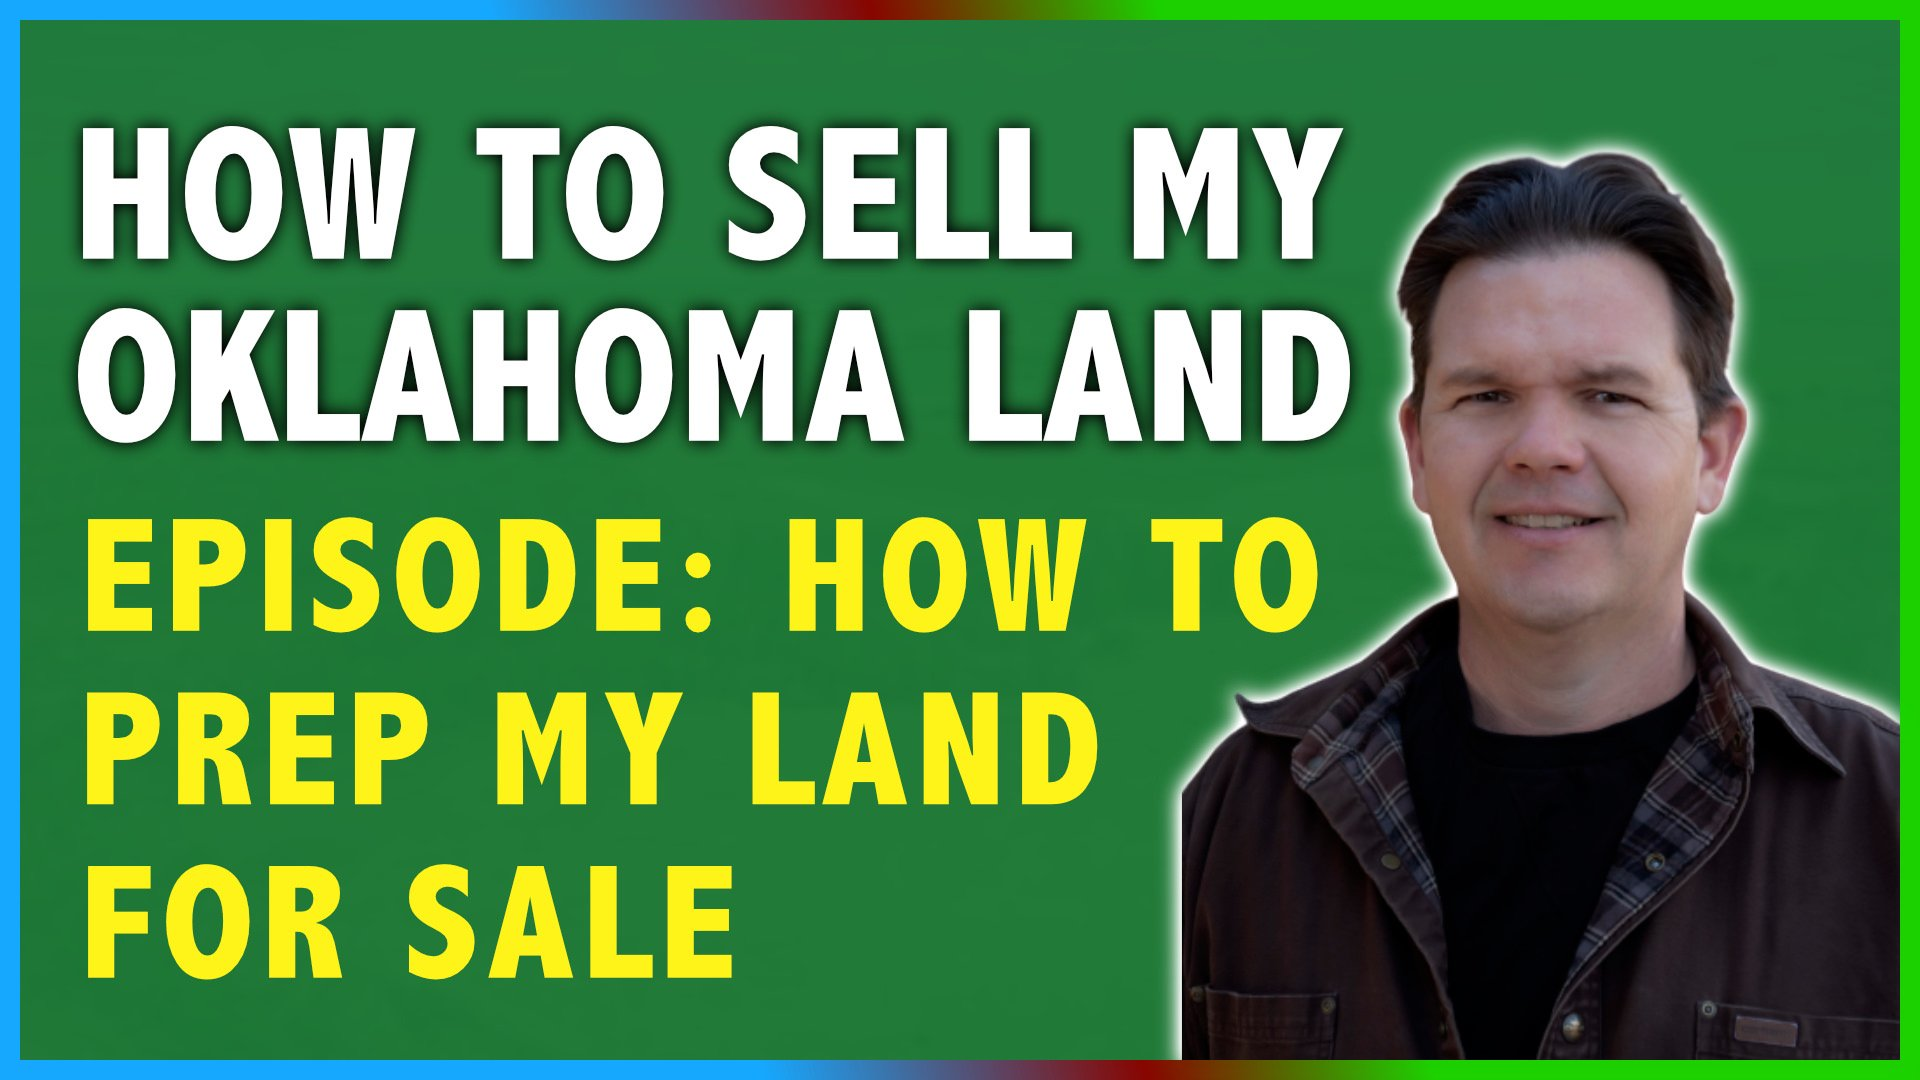 SELL MY LAND HOW TO PREP MY LAND, Checklands